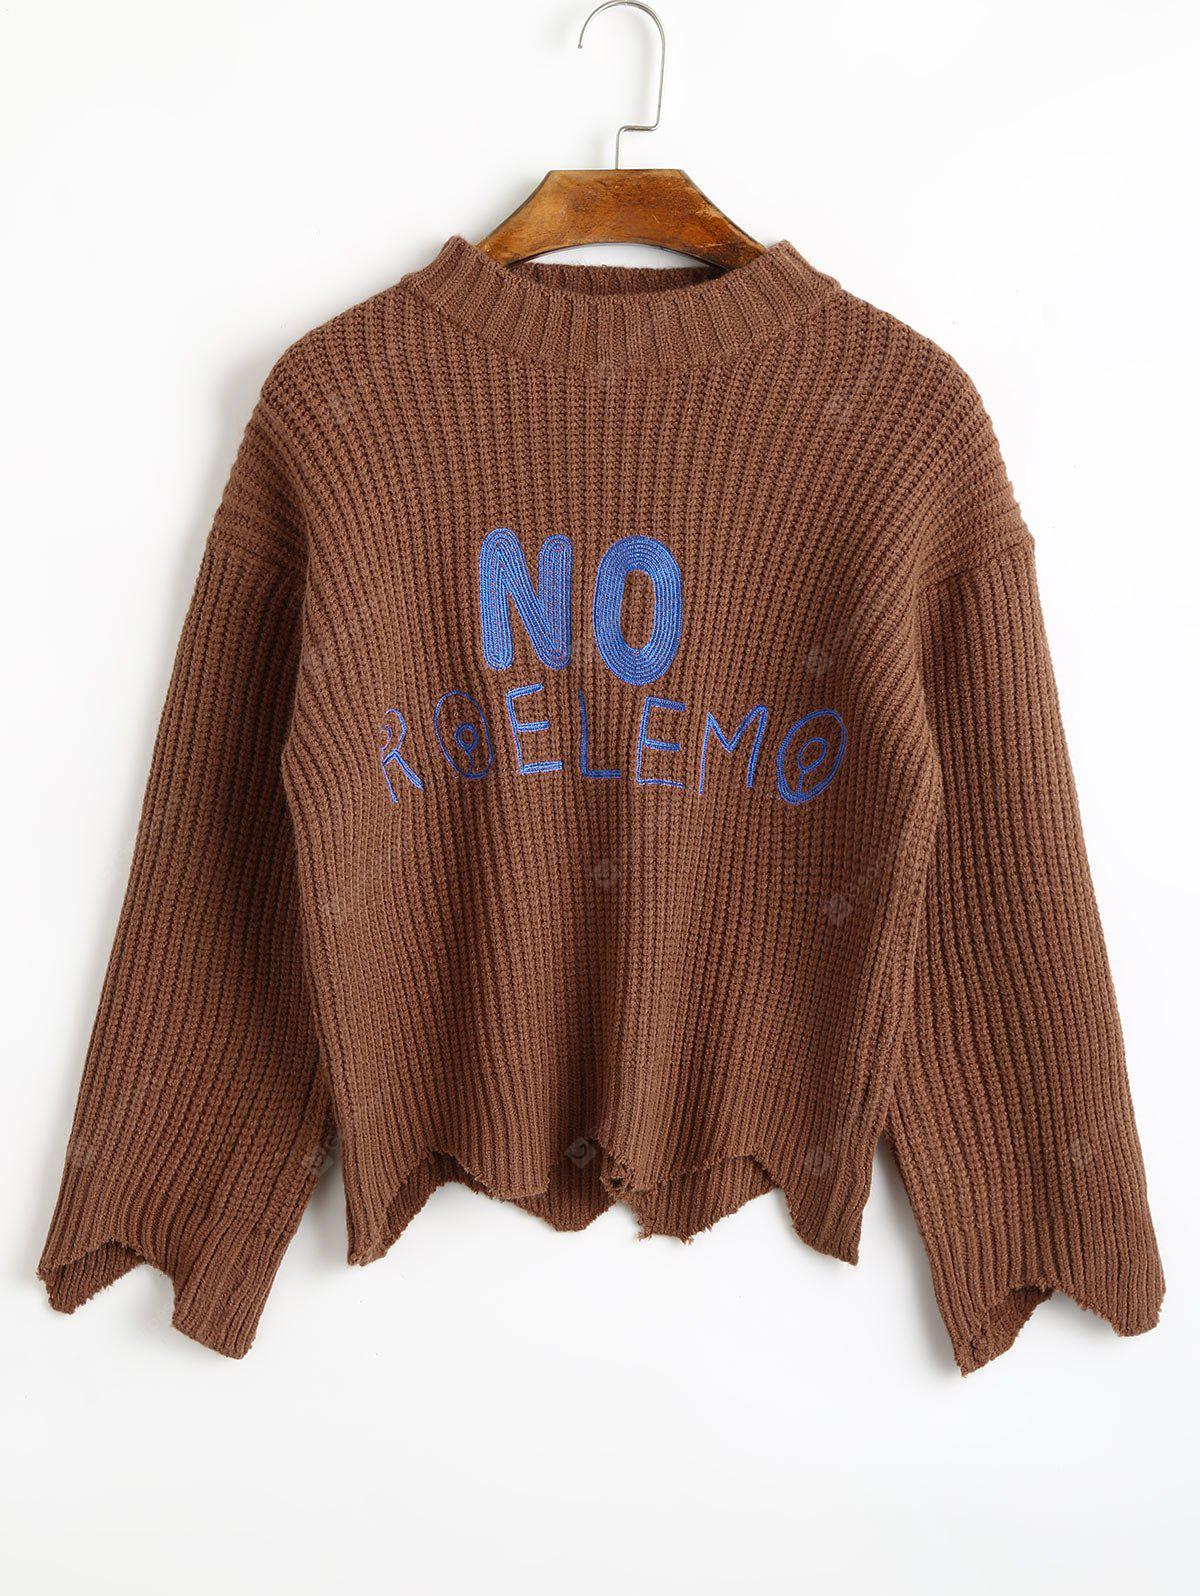 Zickzack-Saum Buchstabe gepatcht Chunky Pullover